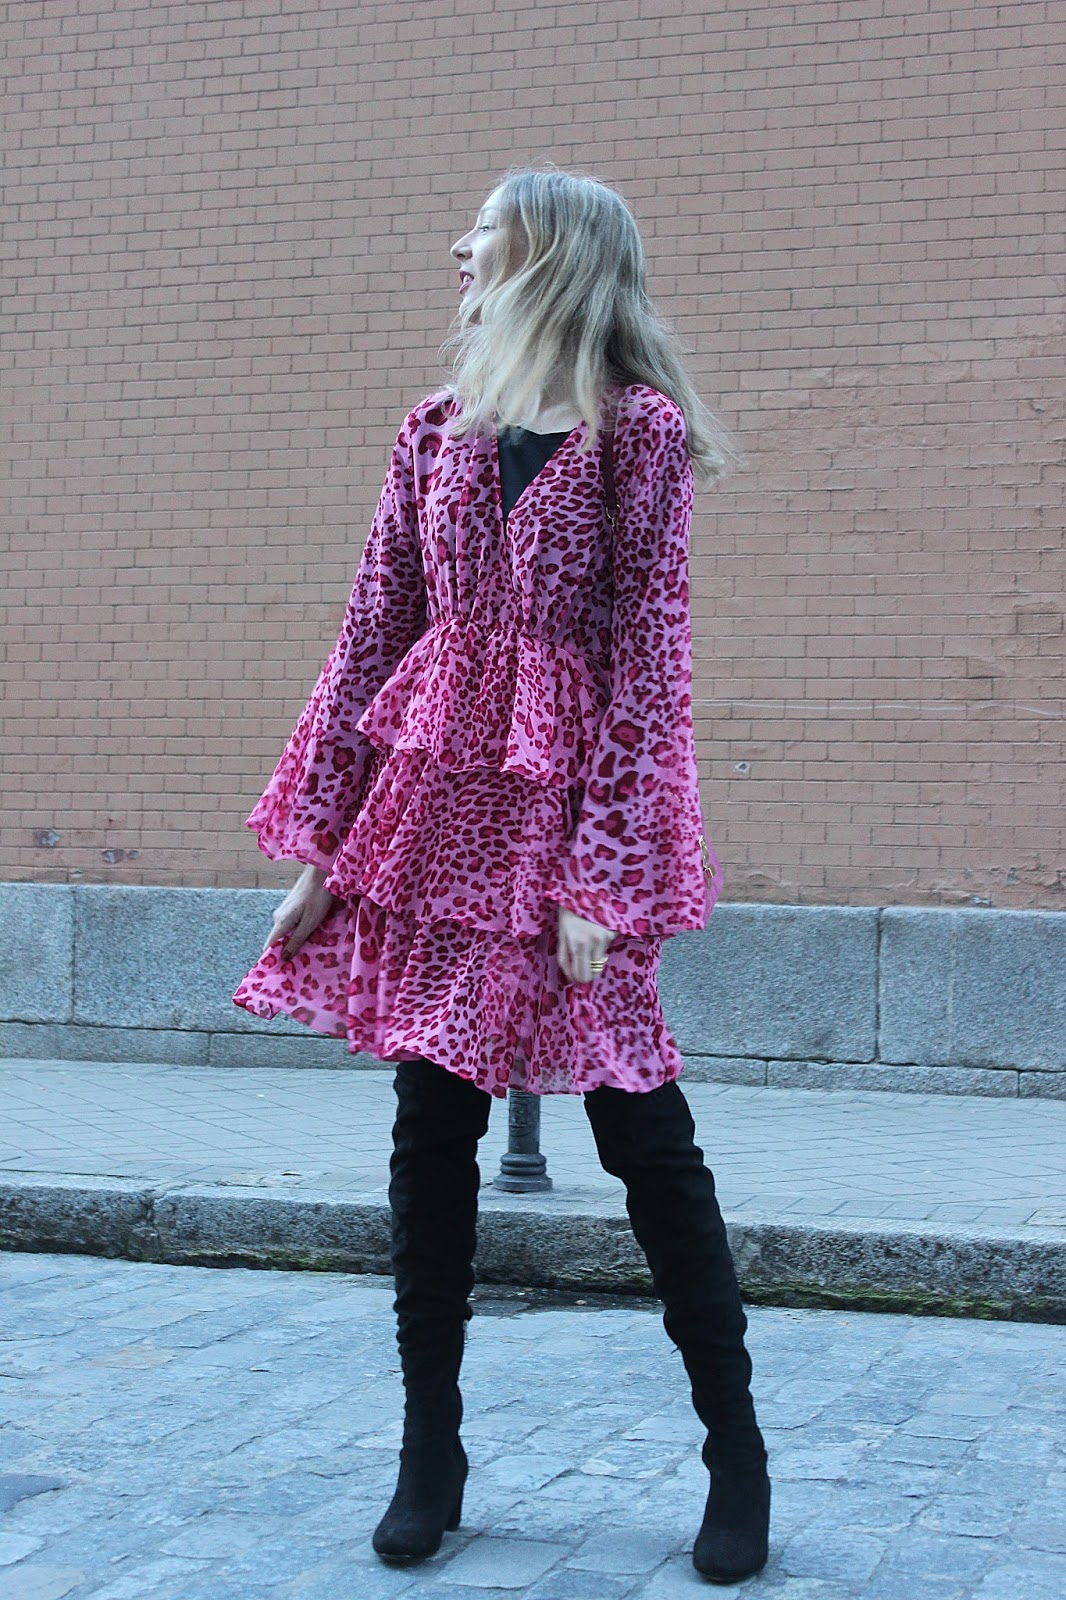 leopard-print-chiffon-dress-ruffles-nakd-fashion